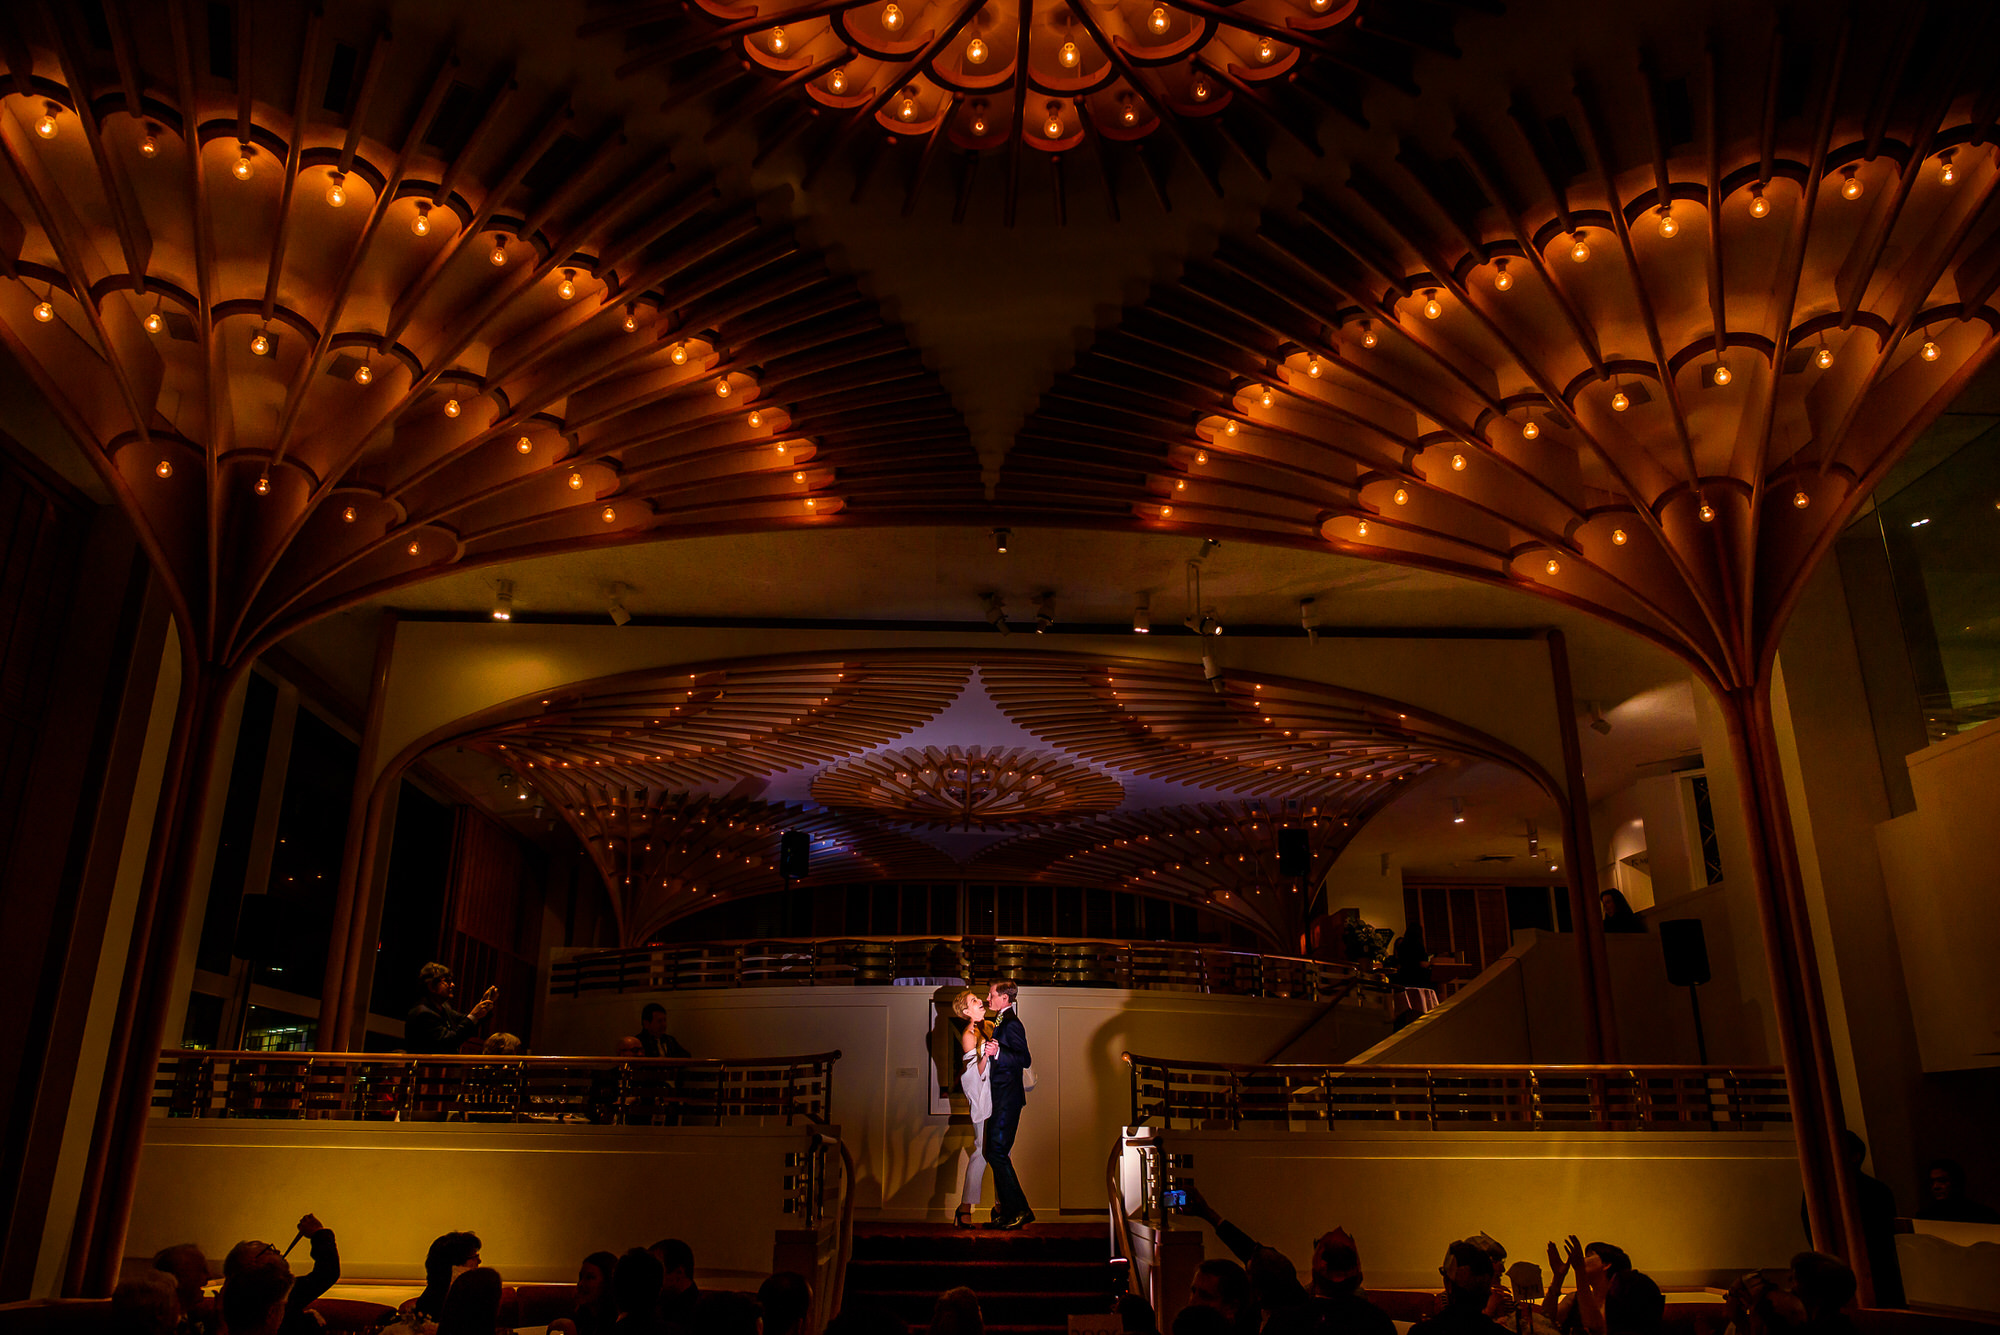 First dance photo in ornate ballroom by Tyler Wirken - Kansas City